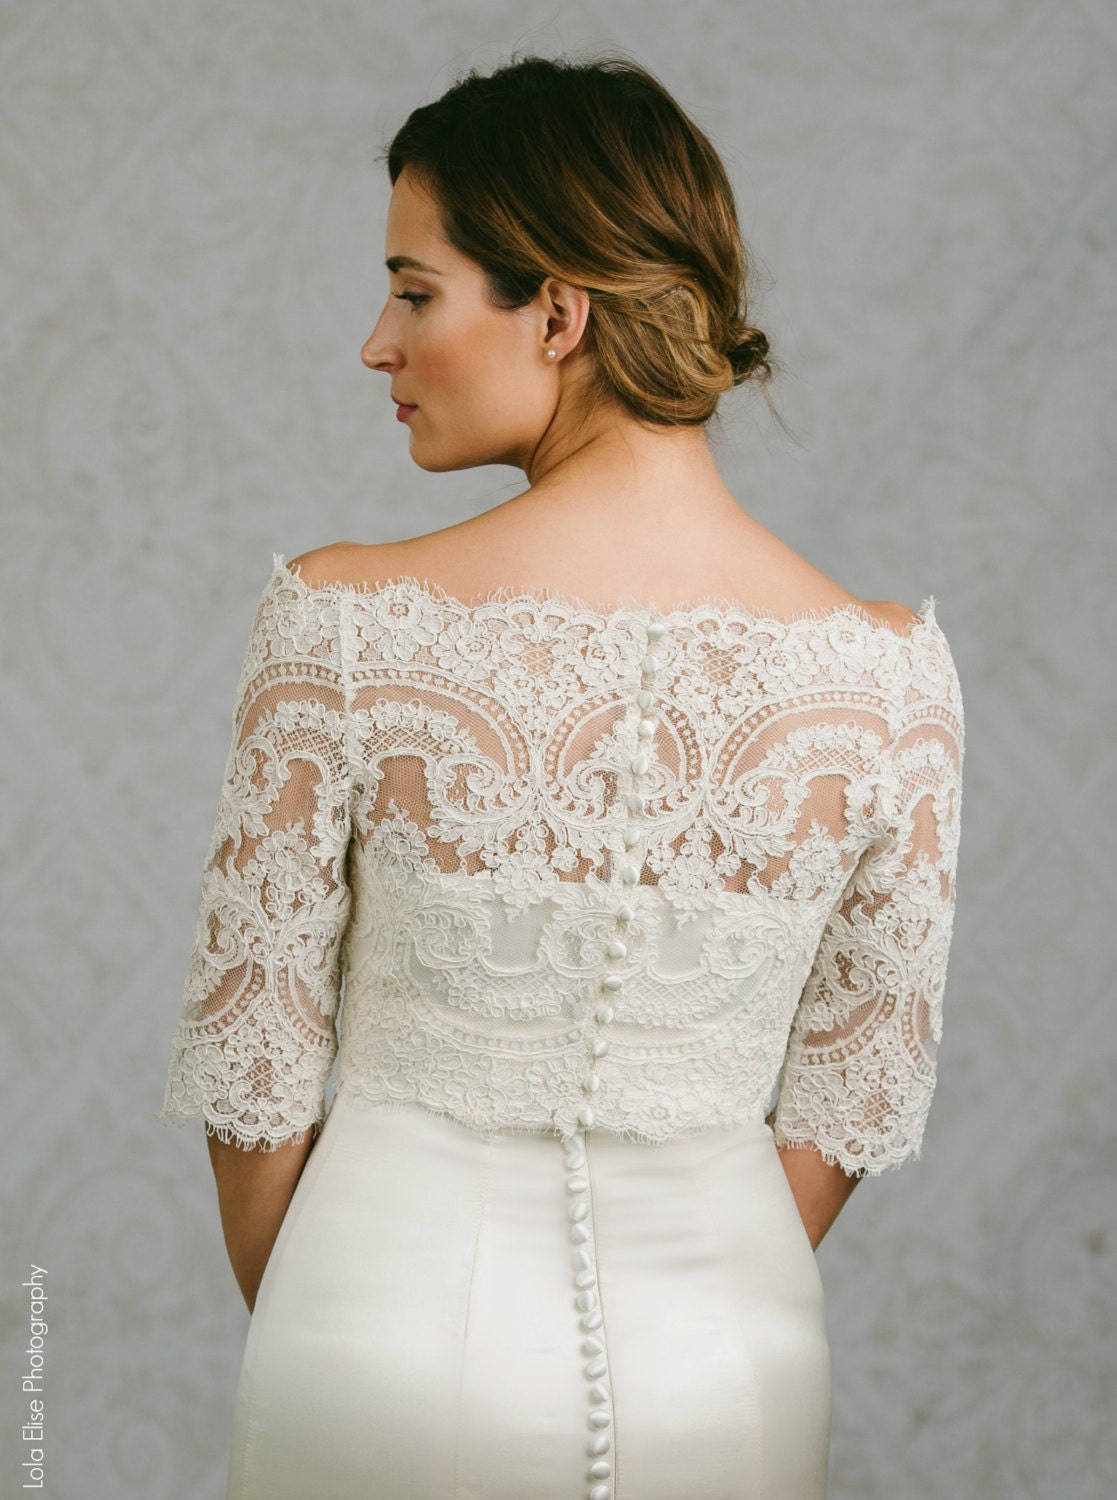 Lace bridal bolero lace bolero bridal topper bianca for Wedding dress boleros and shrugs